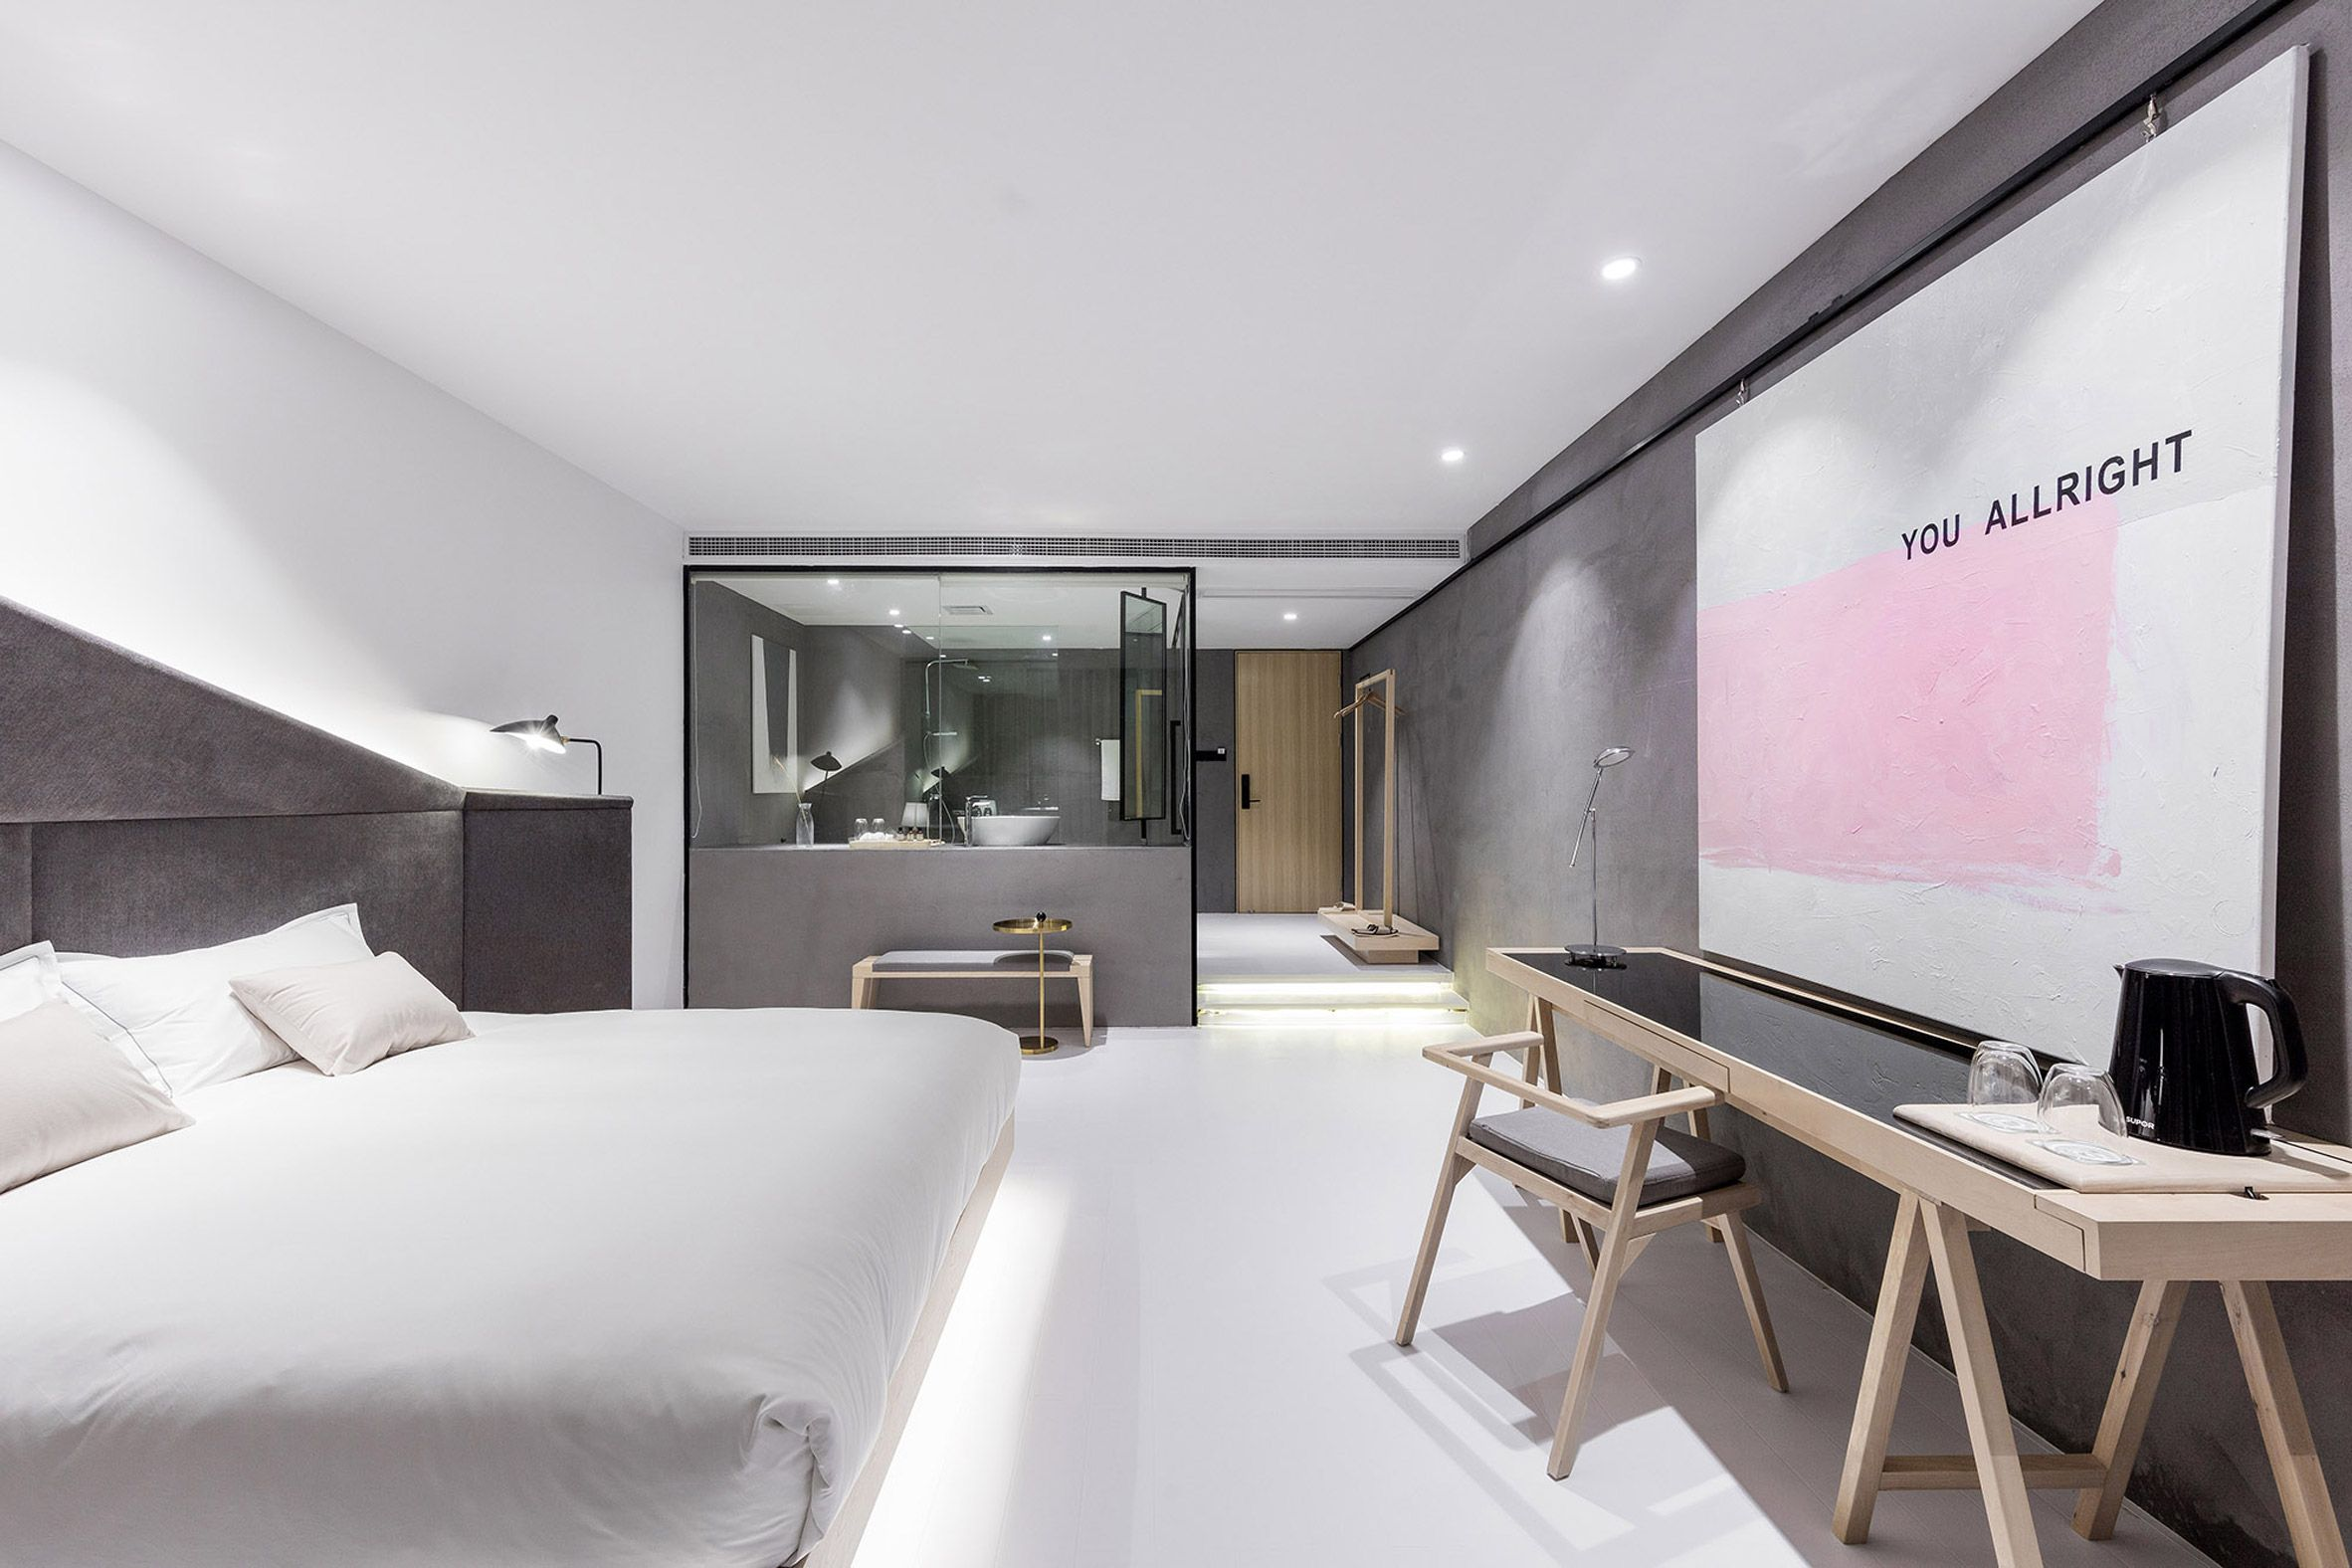 Xl Muse Designs Interiors At Chinese Hotel For Millennials